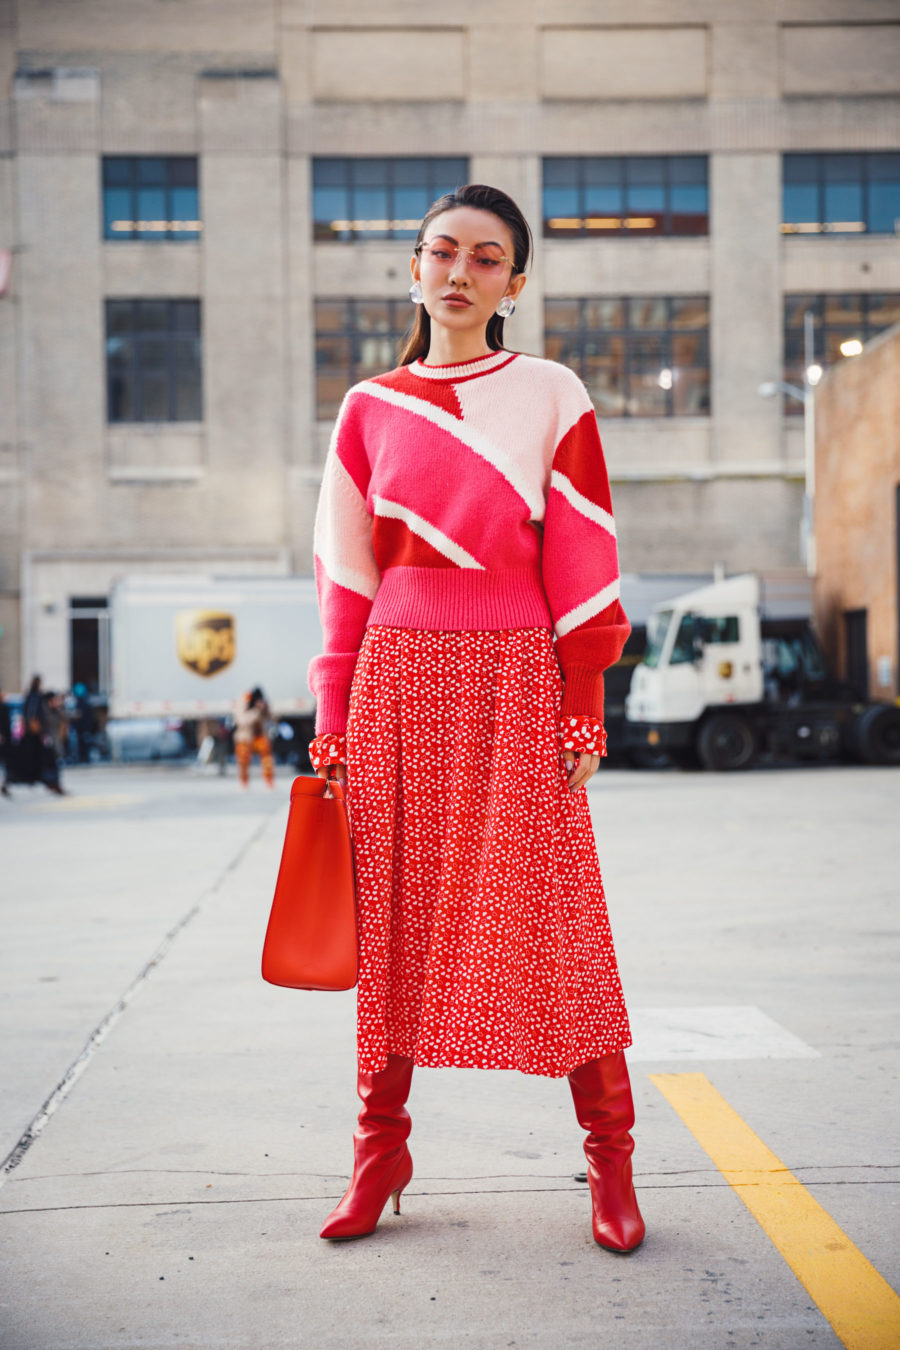 Outdated Fashion Rules You Should Break, nyc winter style, red & pink outfit // Notjessfashion.com